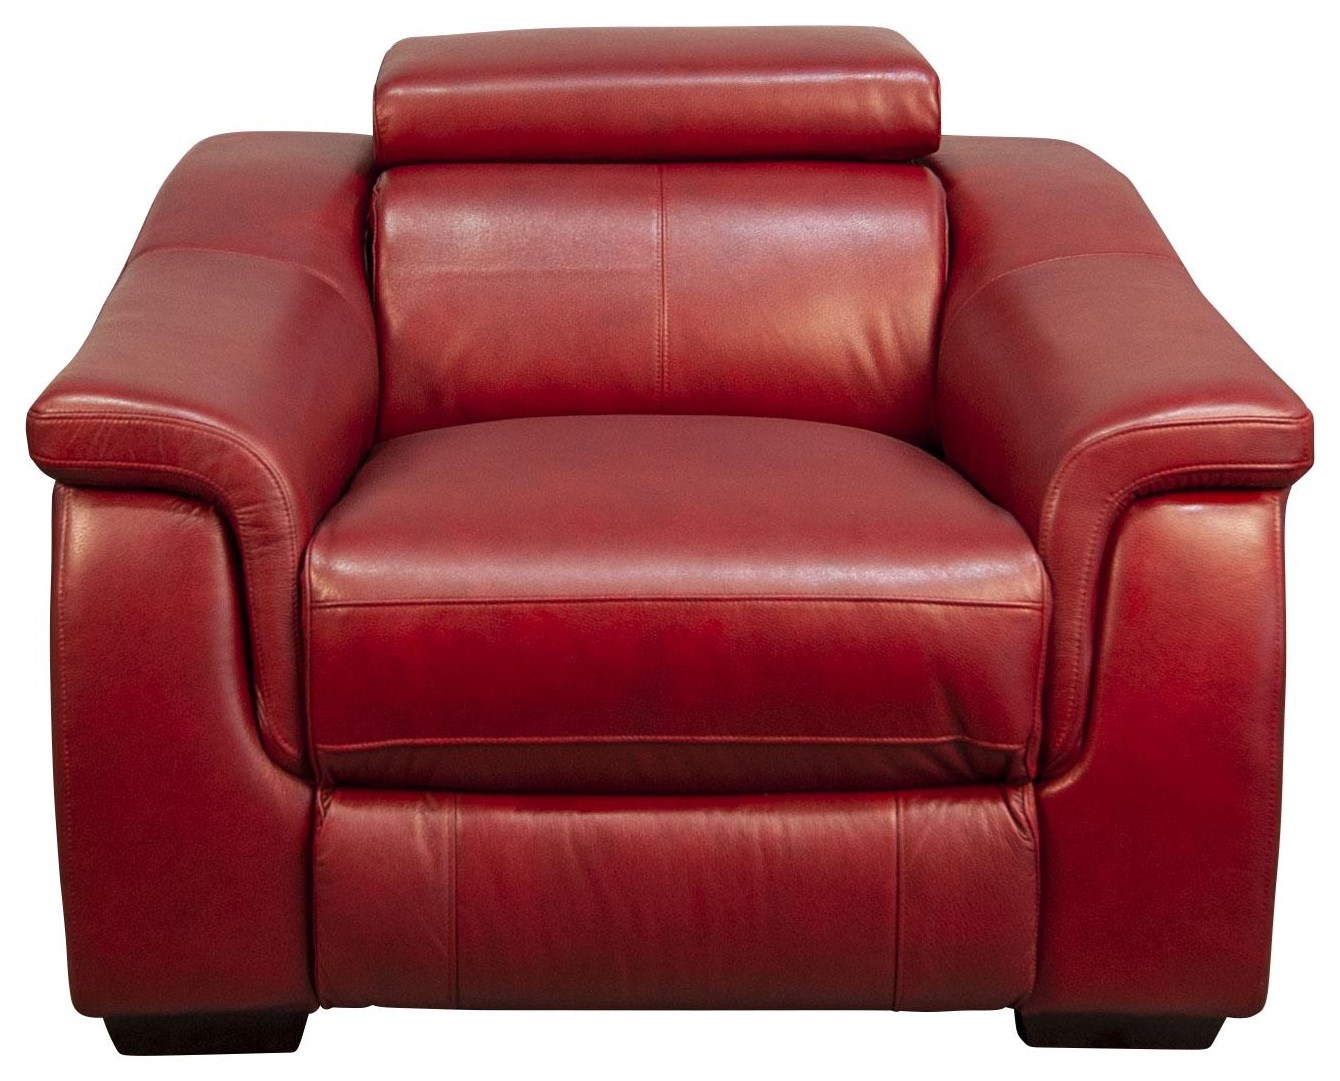 Colton Colton Leather Match Power Recliner by Parker House at Morris Home